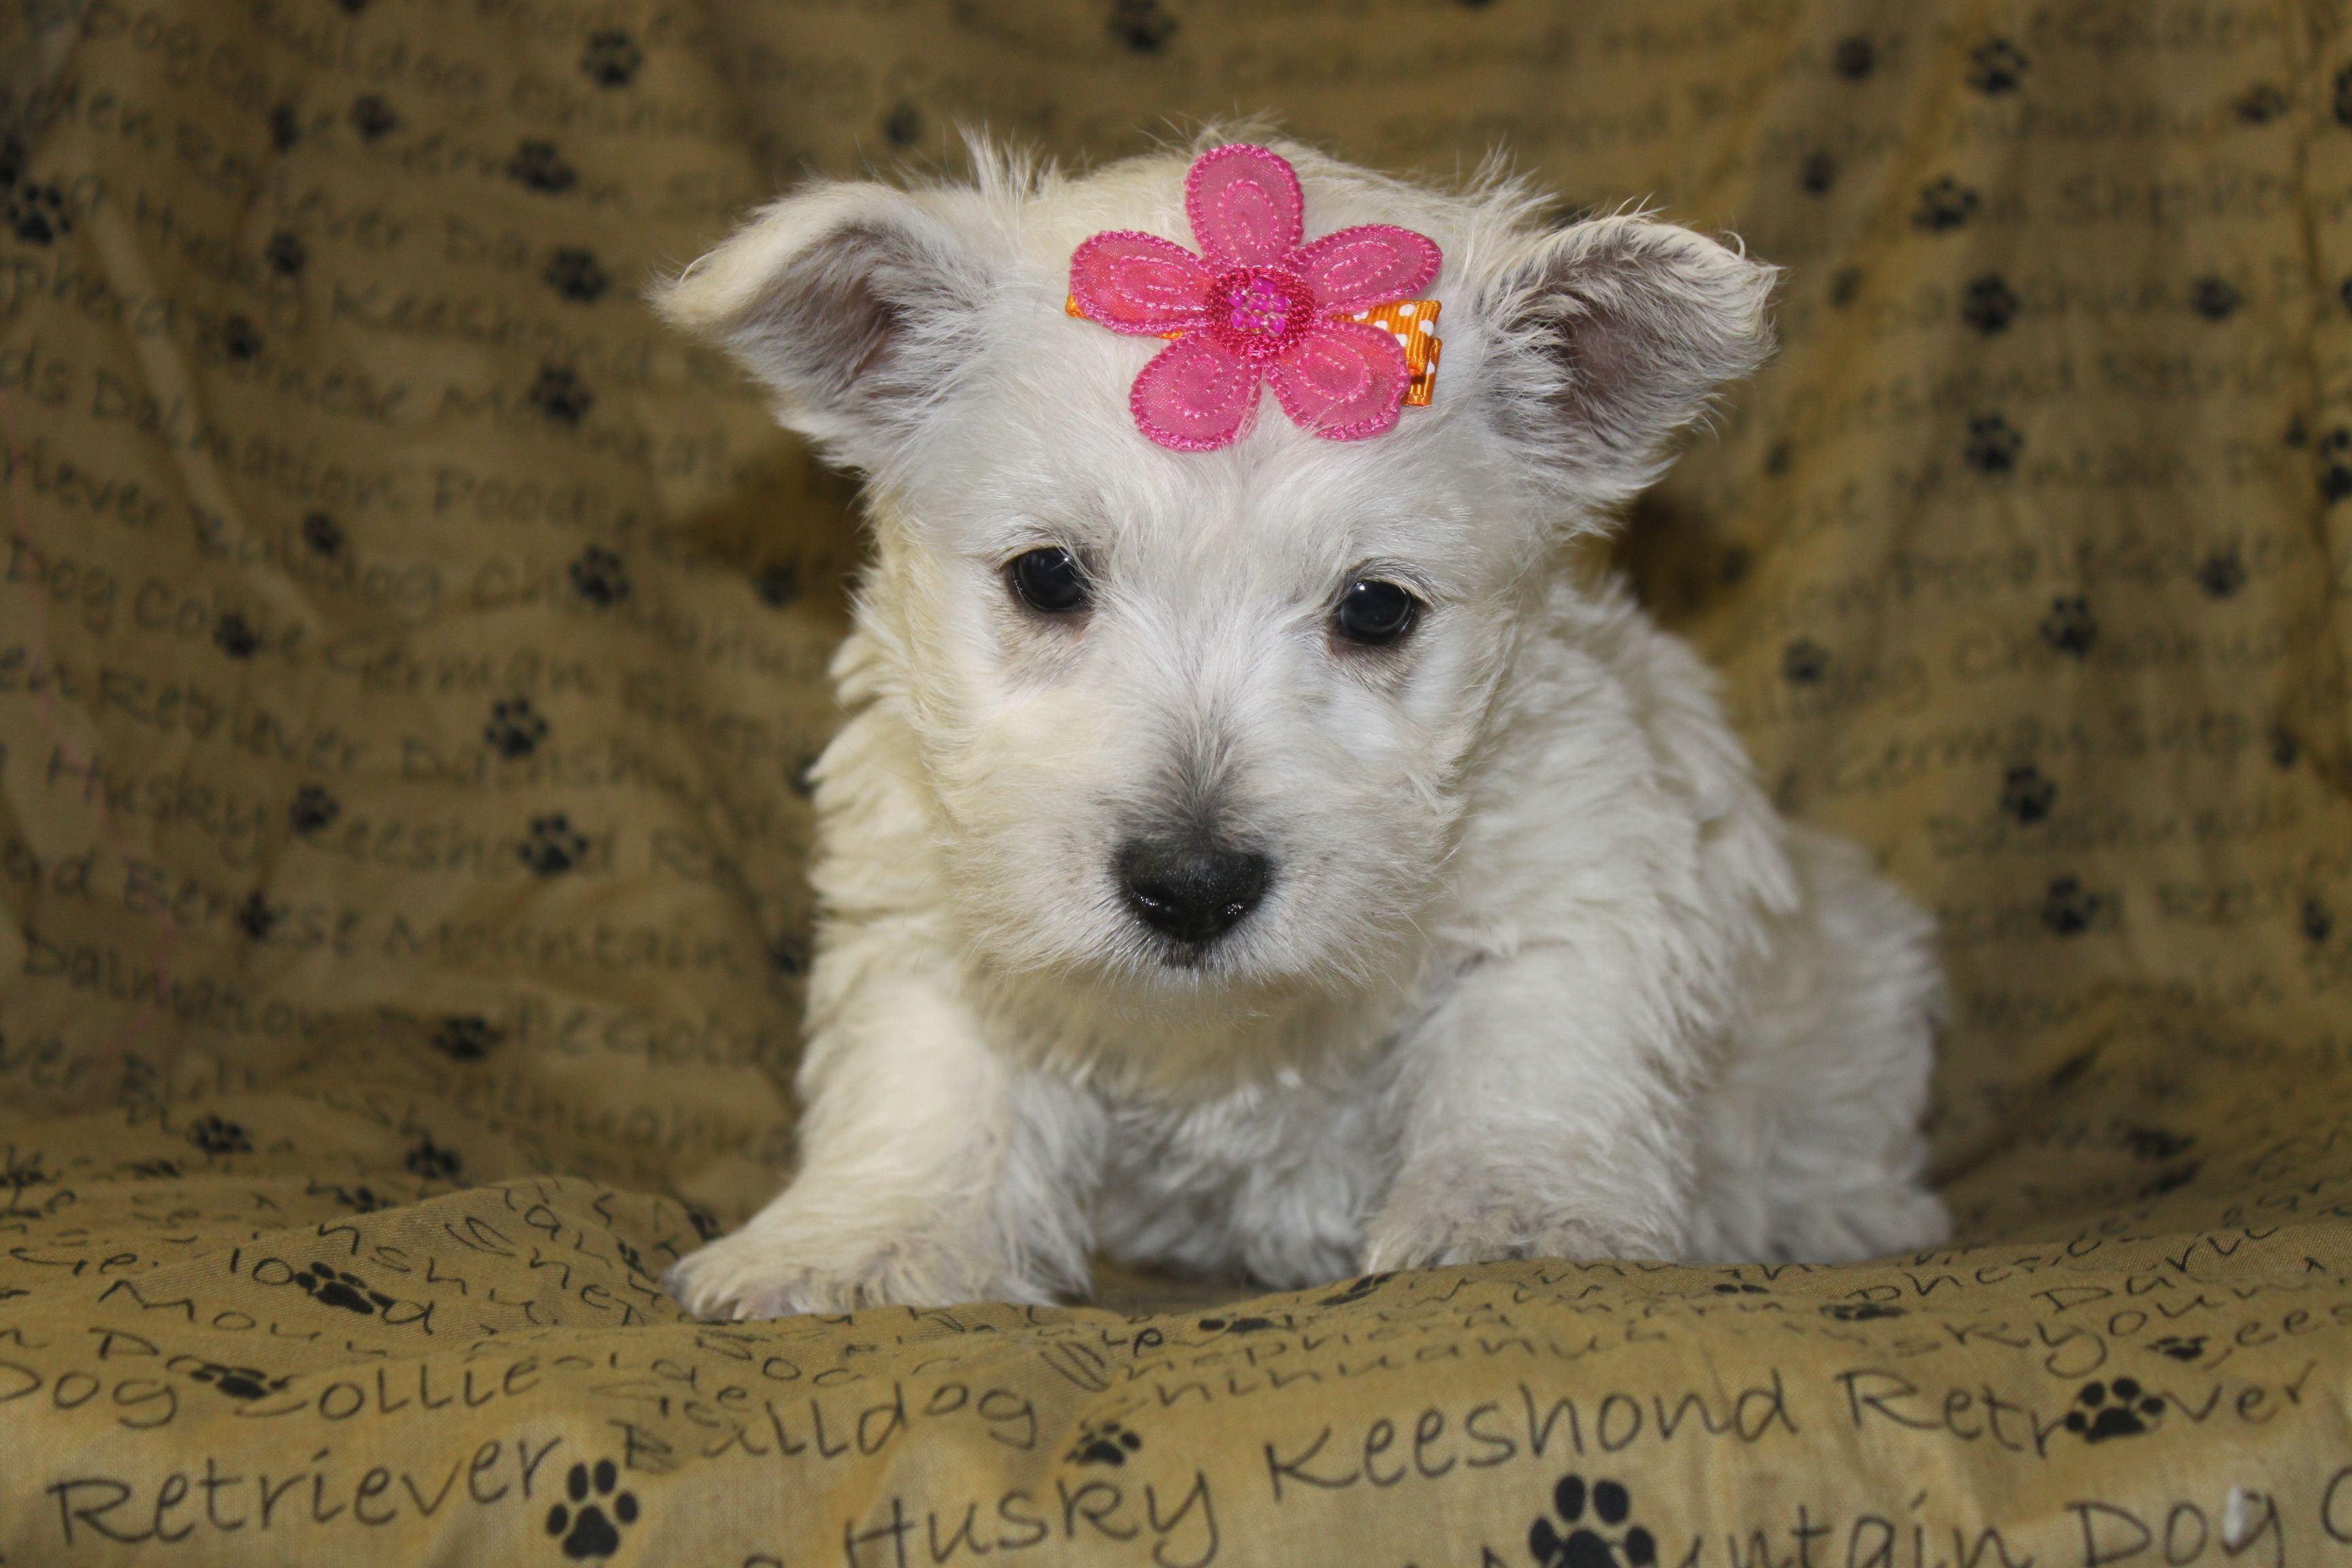 West Highland White Terrier Puppies For Sale In Shippensburg Pa Http Www Network34 Com Dogsbreed With Images Terrier Puppies West Highland White Terrier Westie Puppies